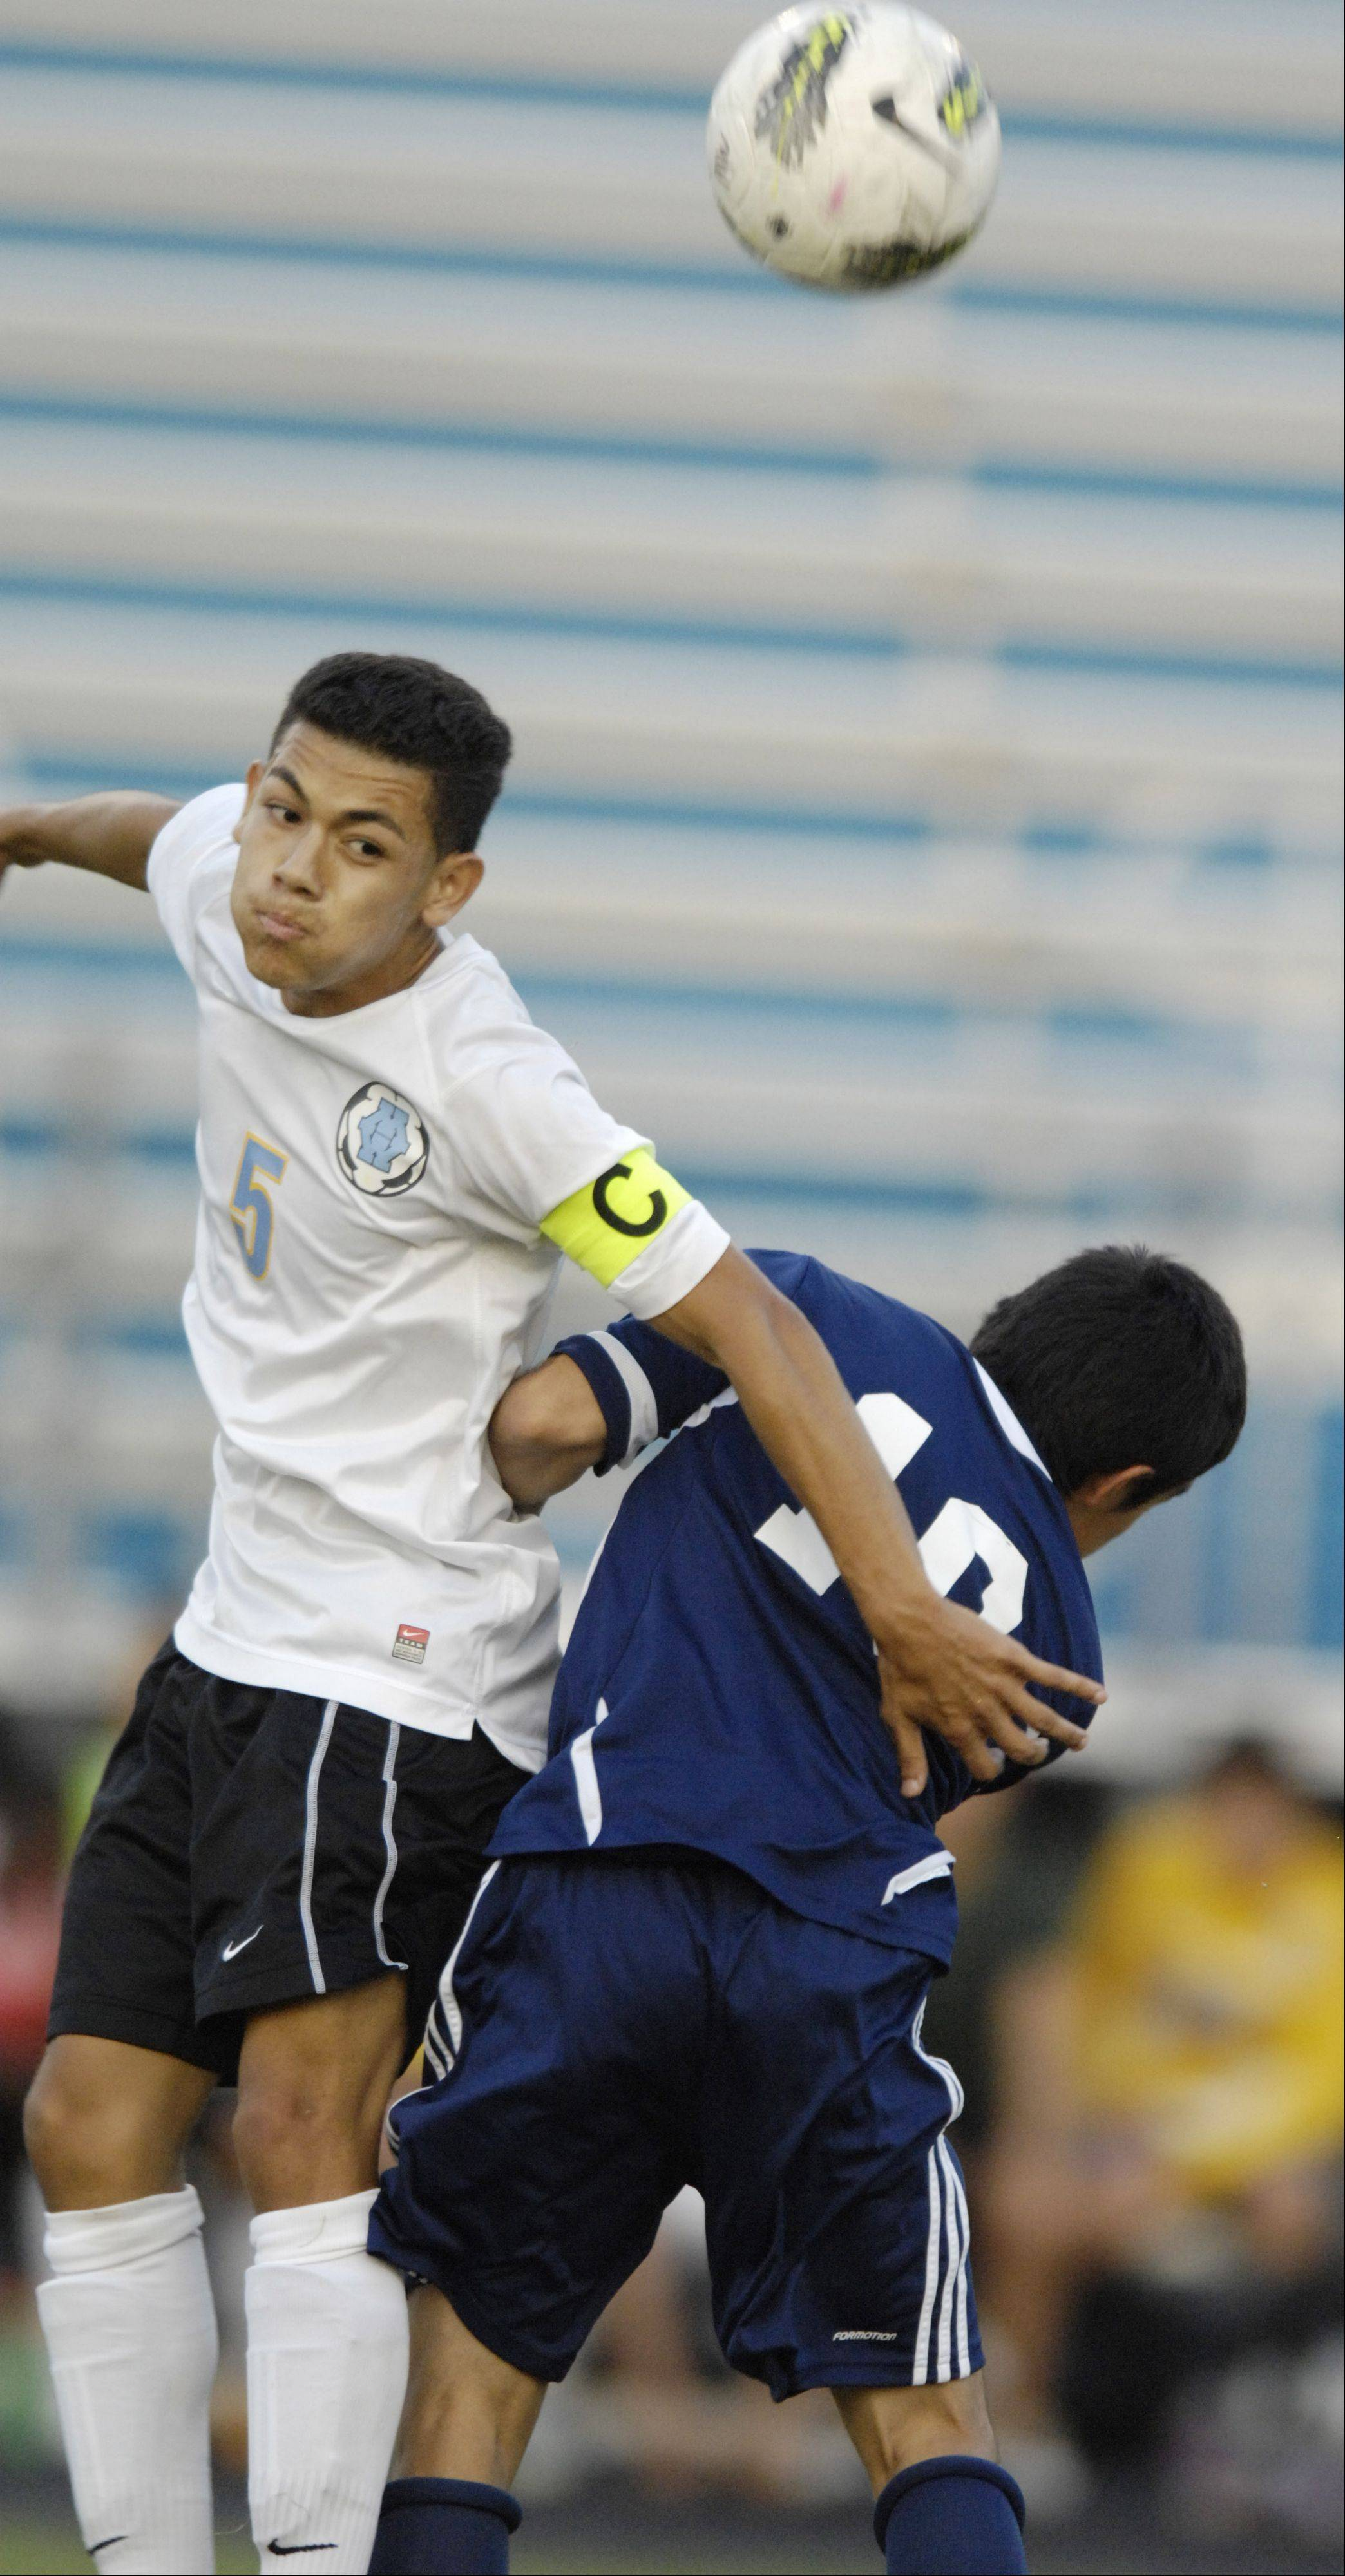 Maine West's Jerry Espinoza leaps for a header against Leyden.